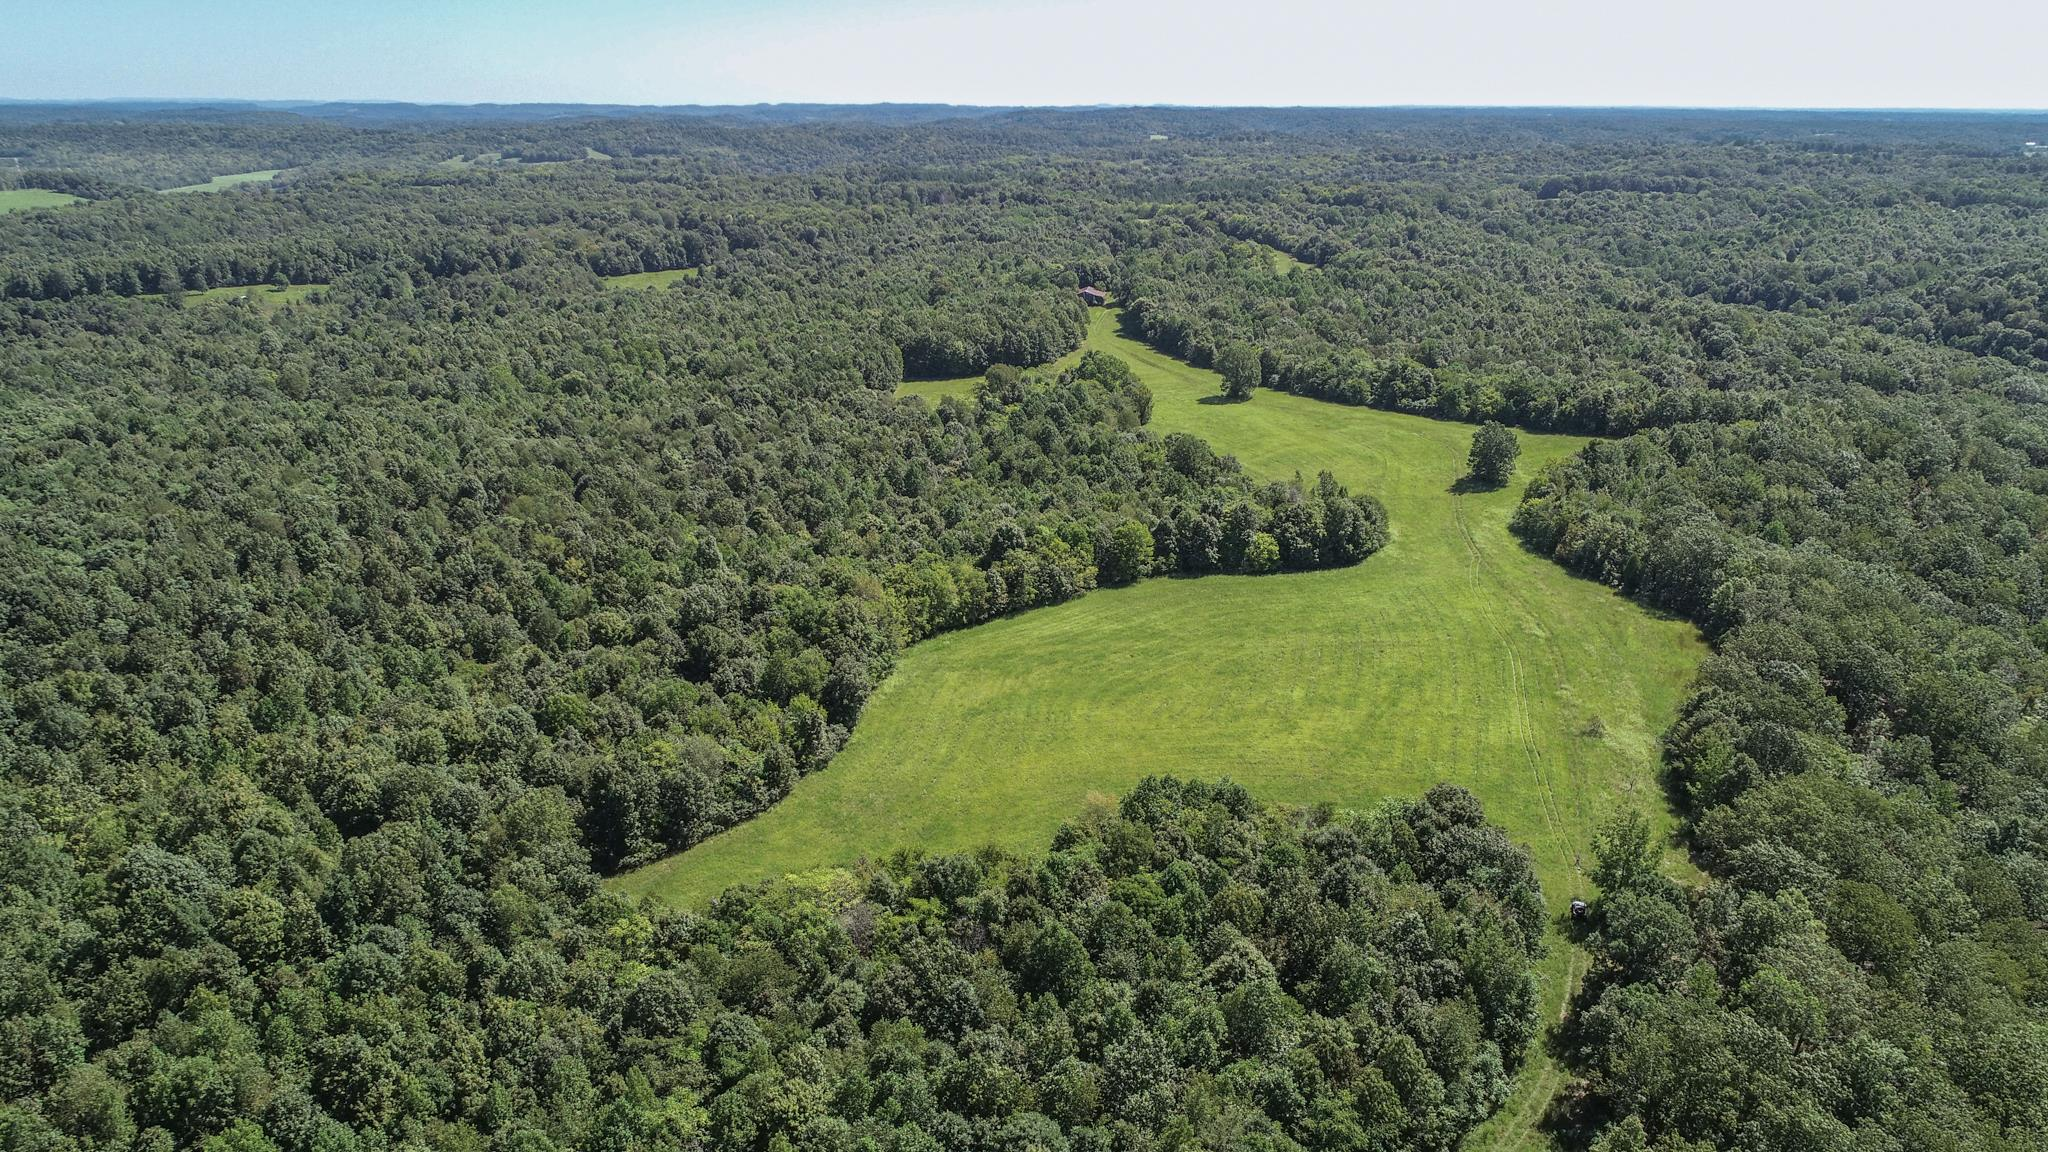 0 Smith Hollow Rd, Mount Pleasant, TN 38474 - Mount Pleasant, TN real estate listing